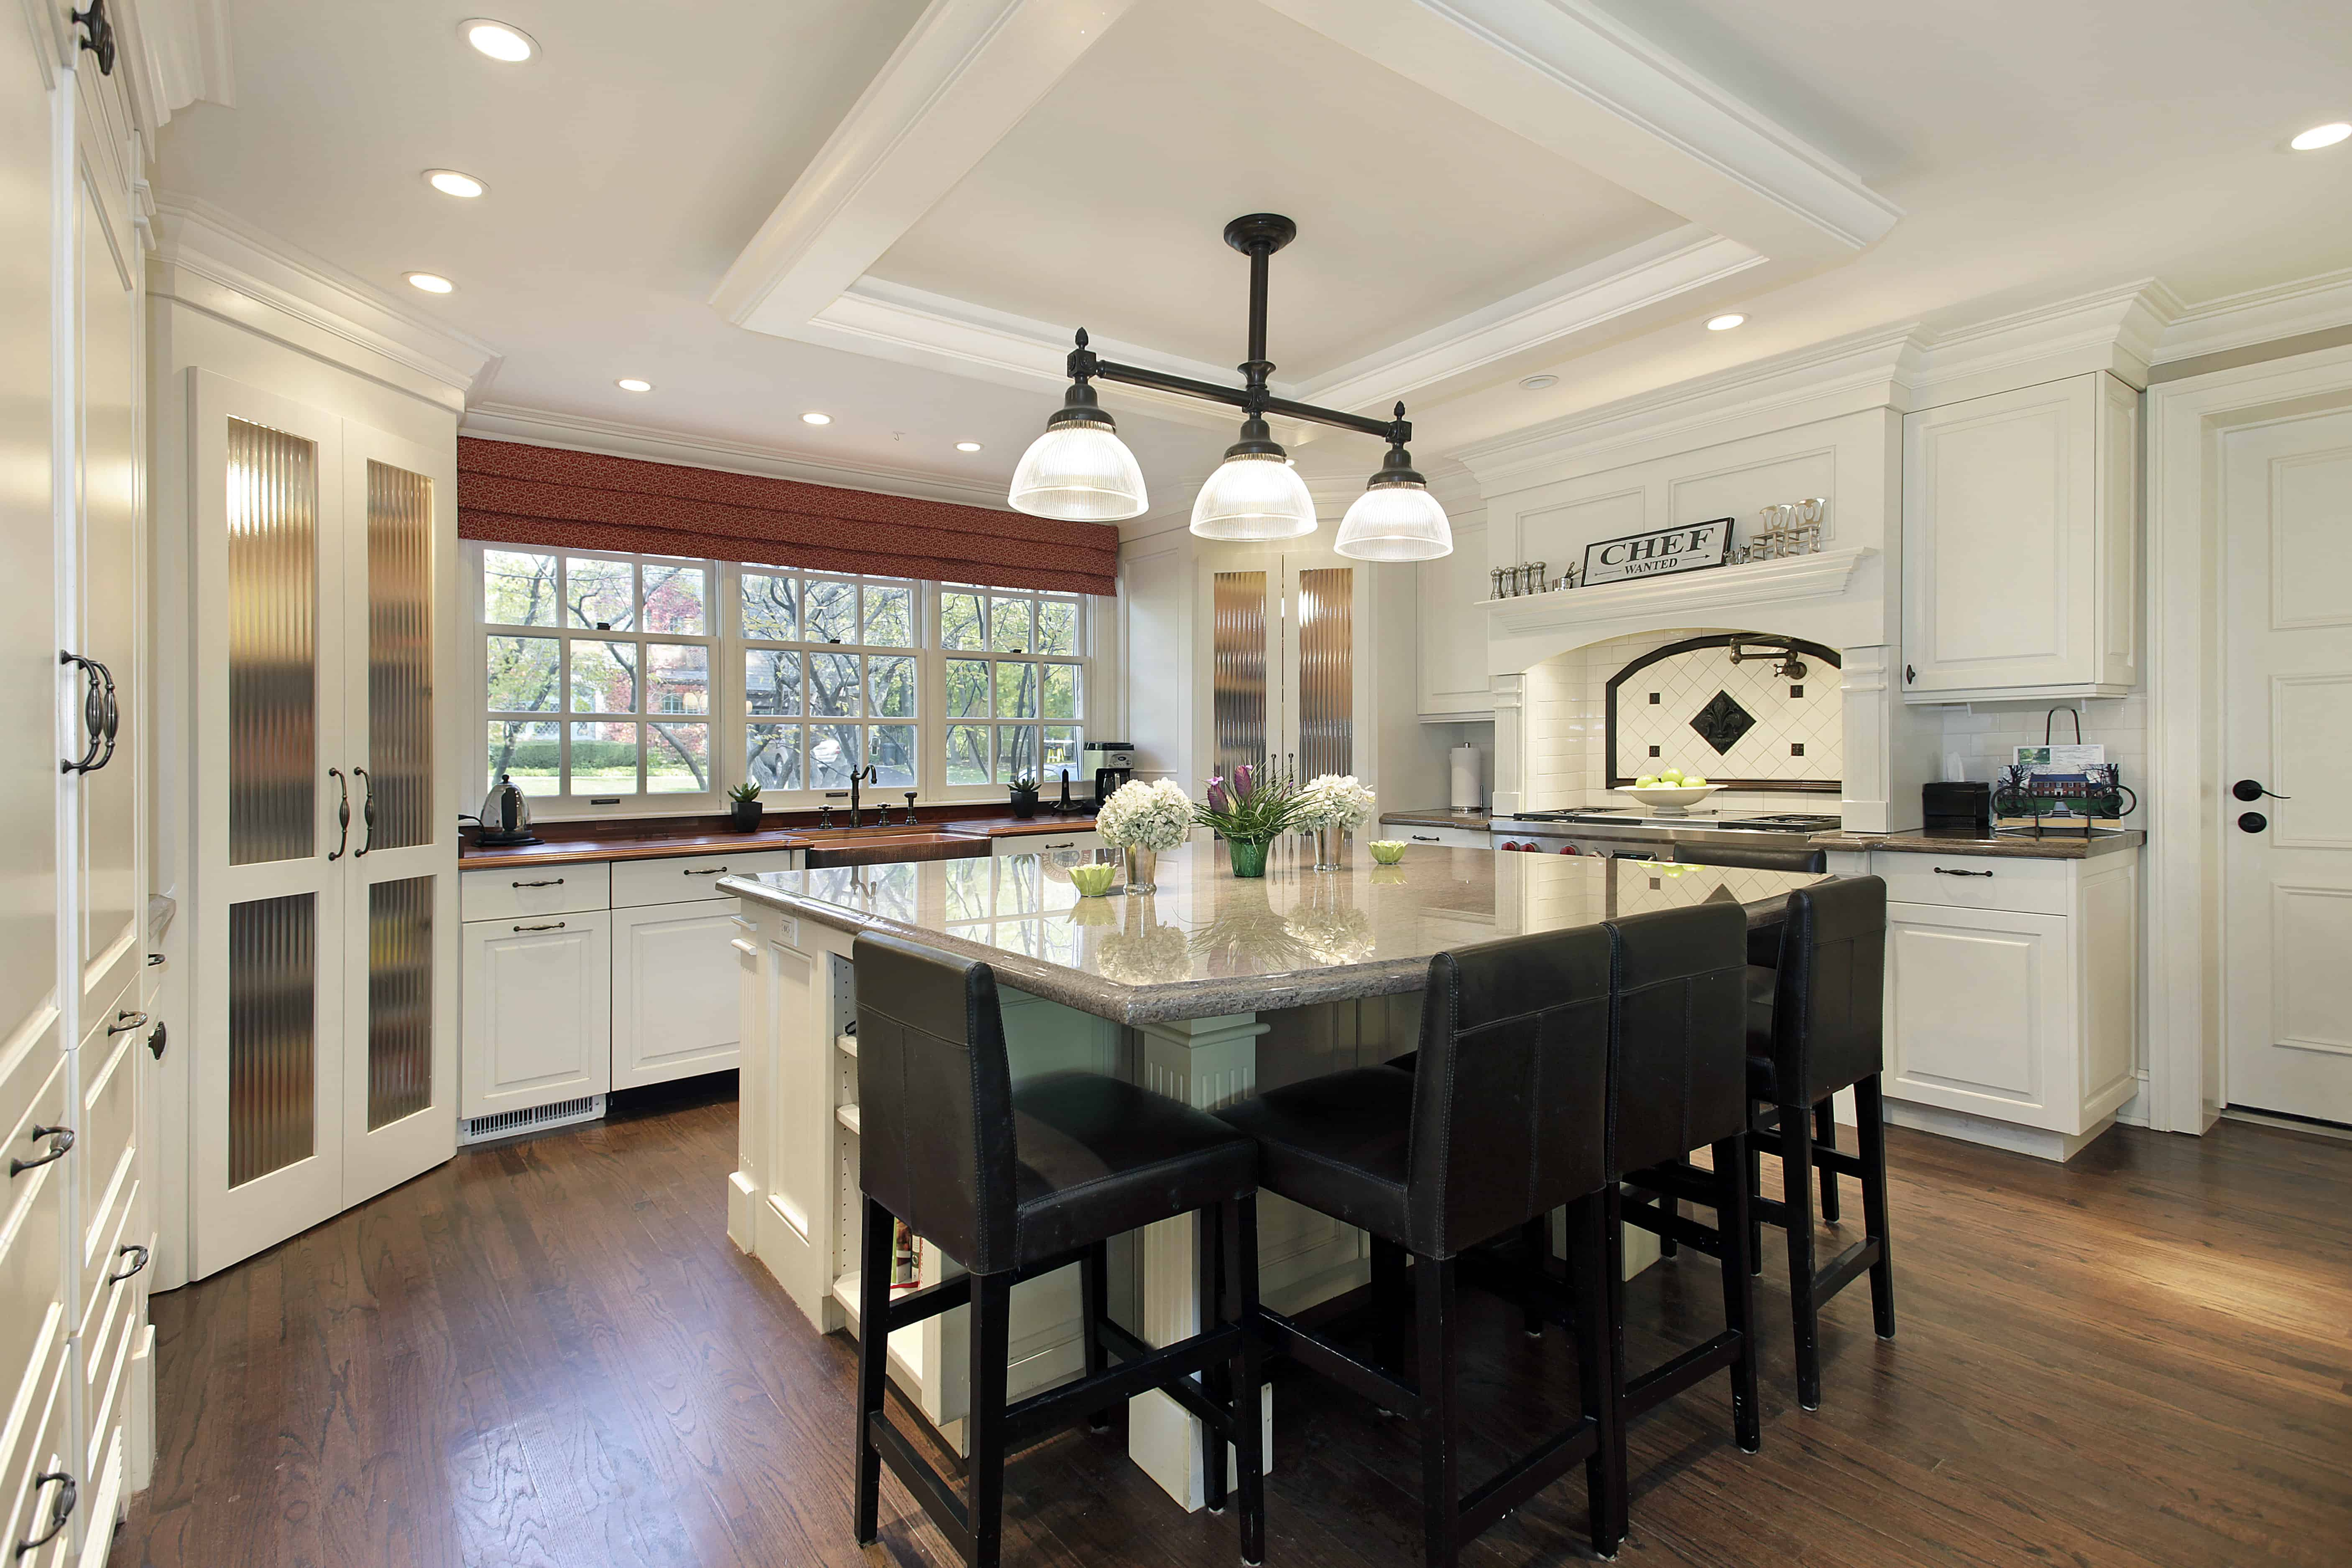 100 Kitchen Islands With Seating For 2, 3, 4, 5, 6 And 8